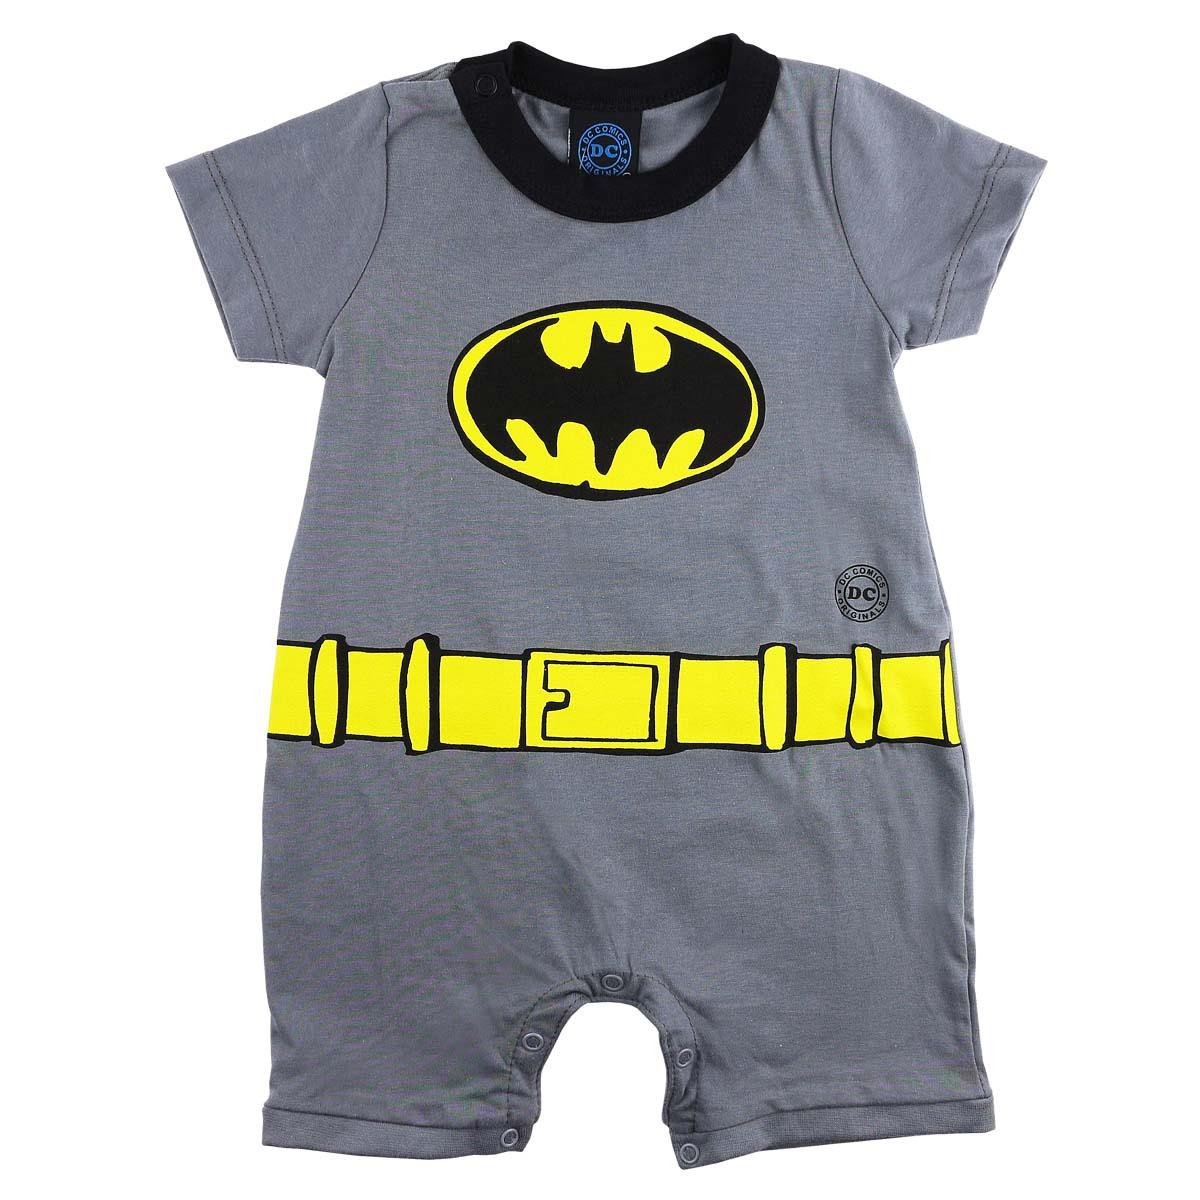 MACACAQUINHO DO BATMAN BABY KAMYLUS